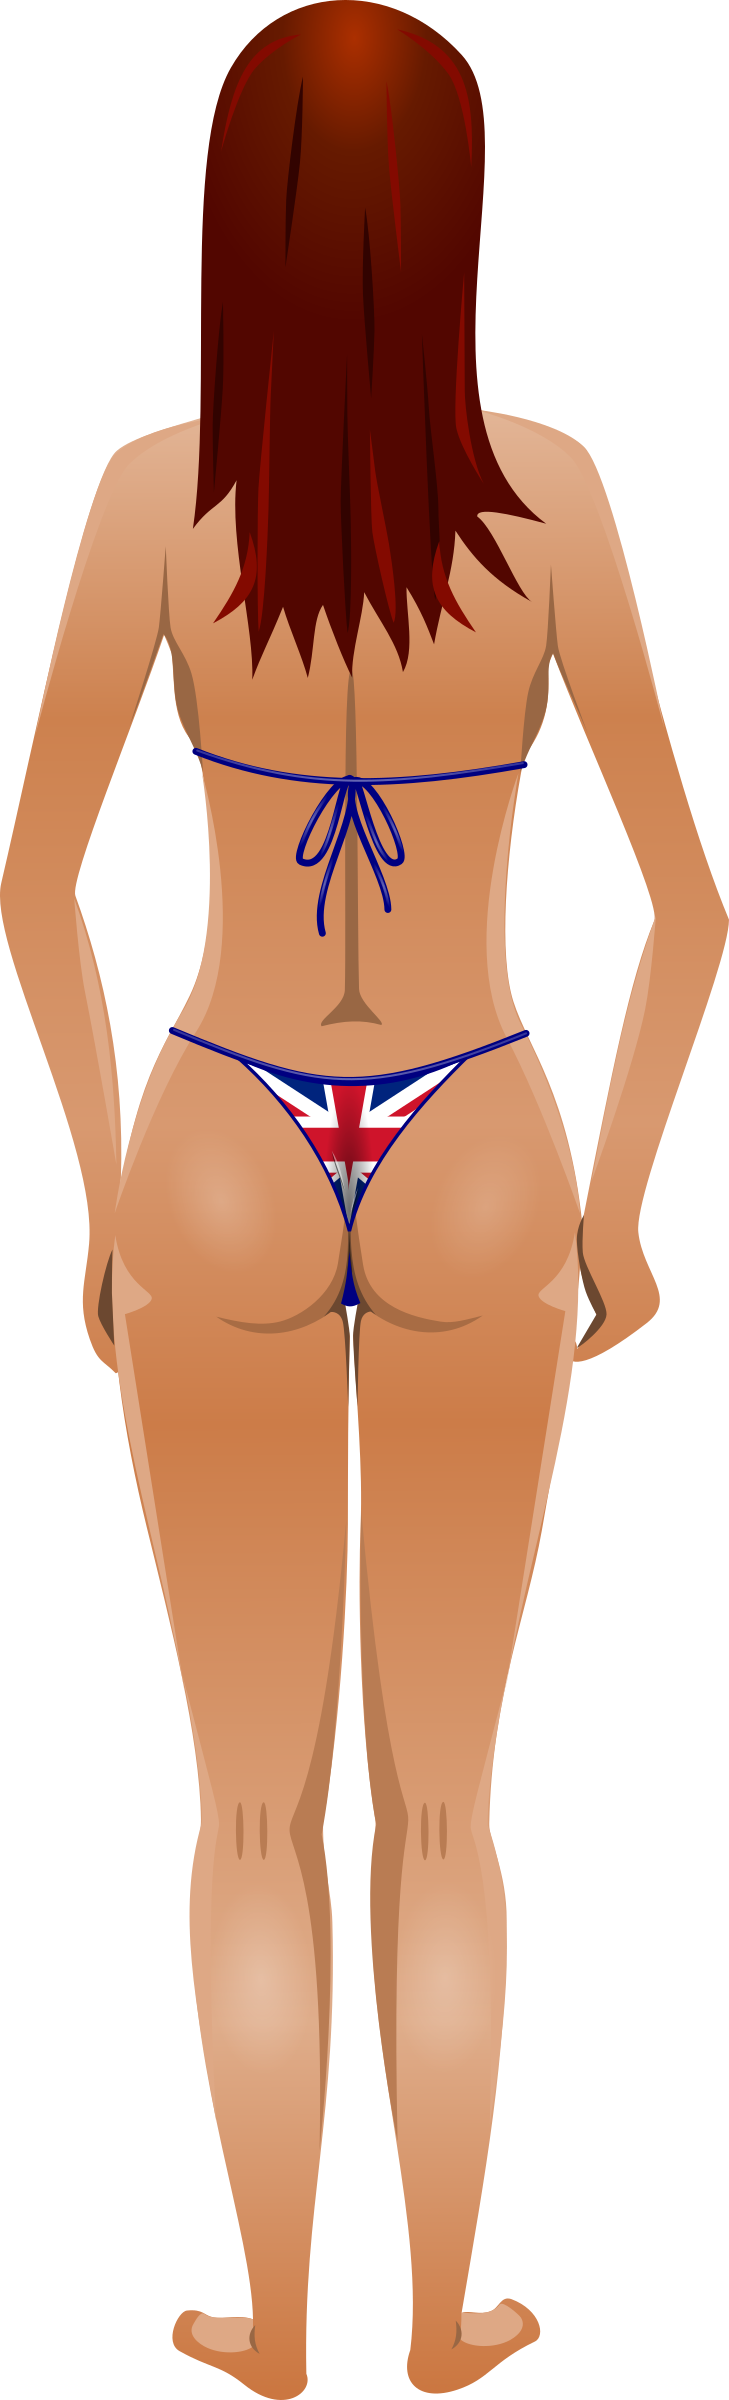 Young lady (light skin, flag bikini, red hair) by Firkin